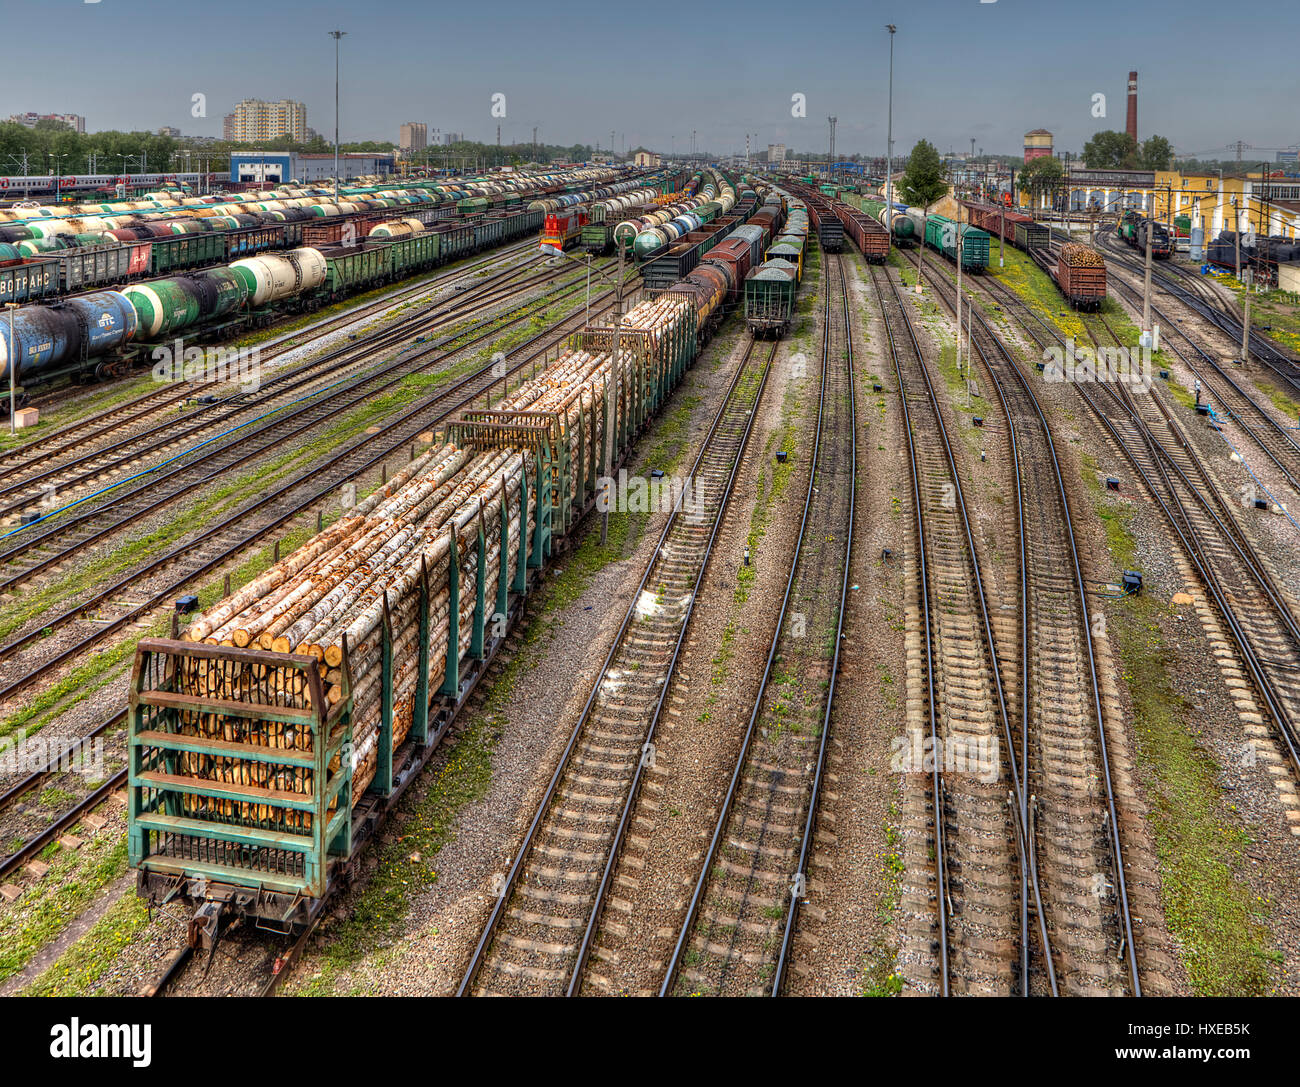 St. Petersburg, Russia - May 22, 2015: Freight trains ready to depart for shunting yard. Many wagons and railway - Stock Image